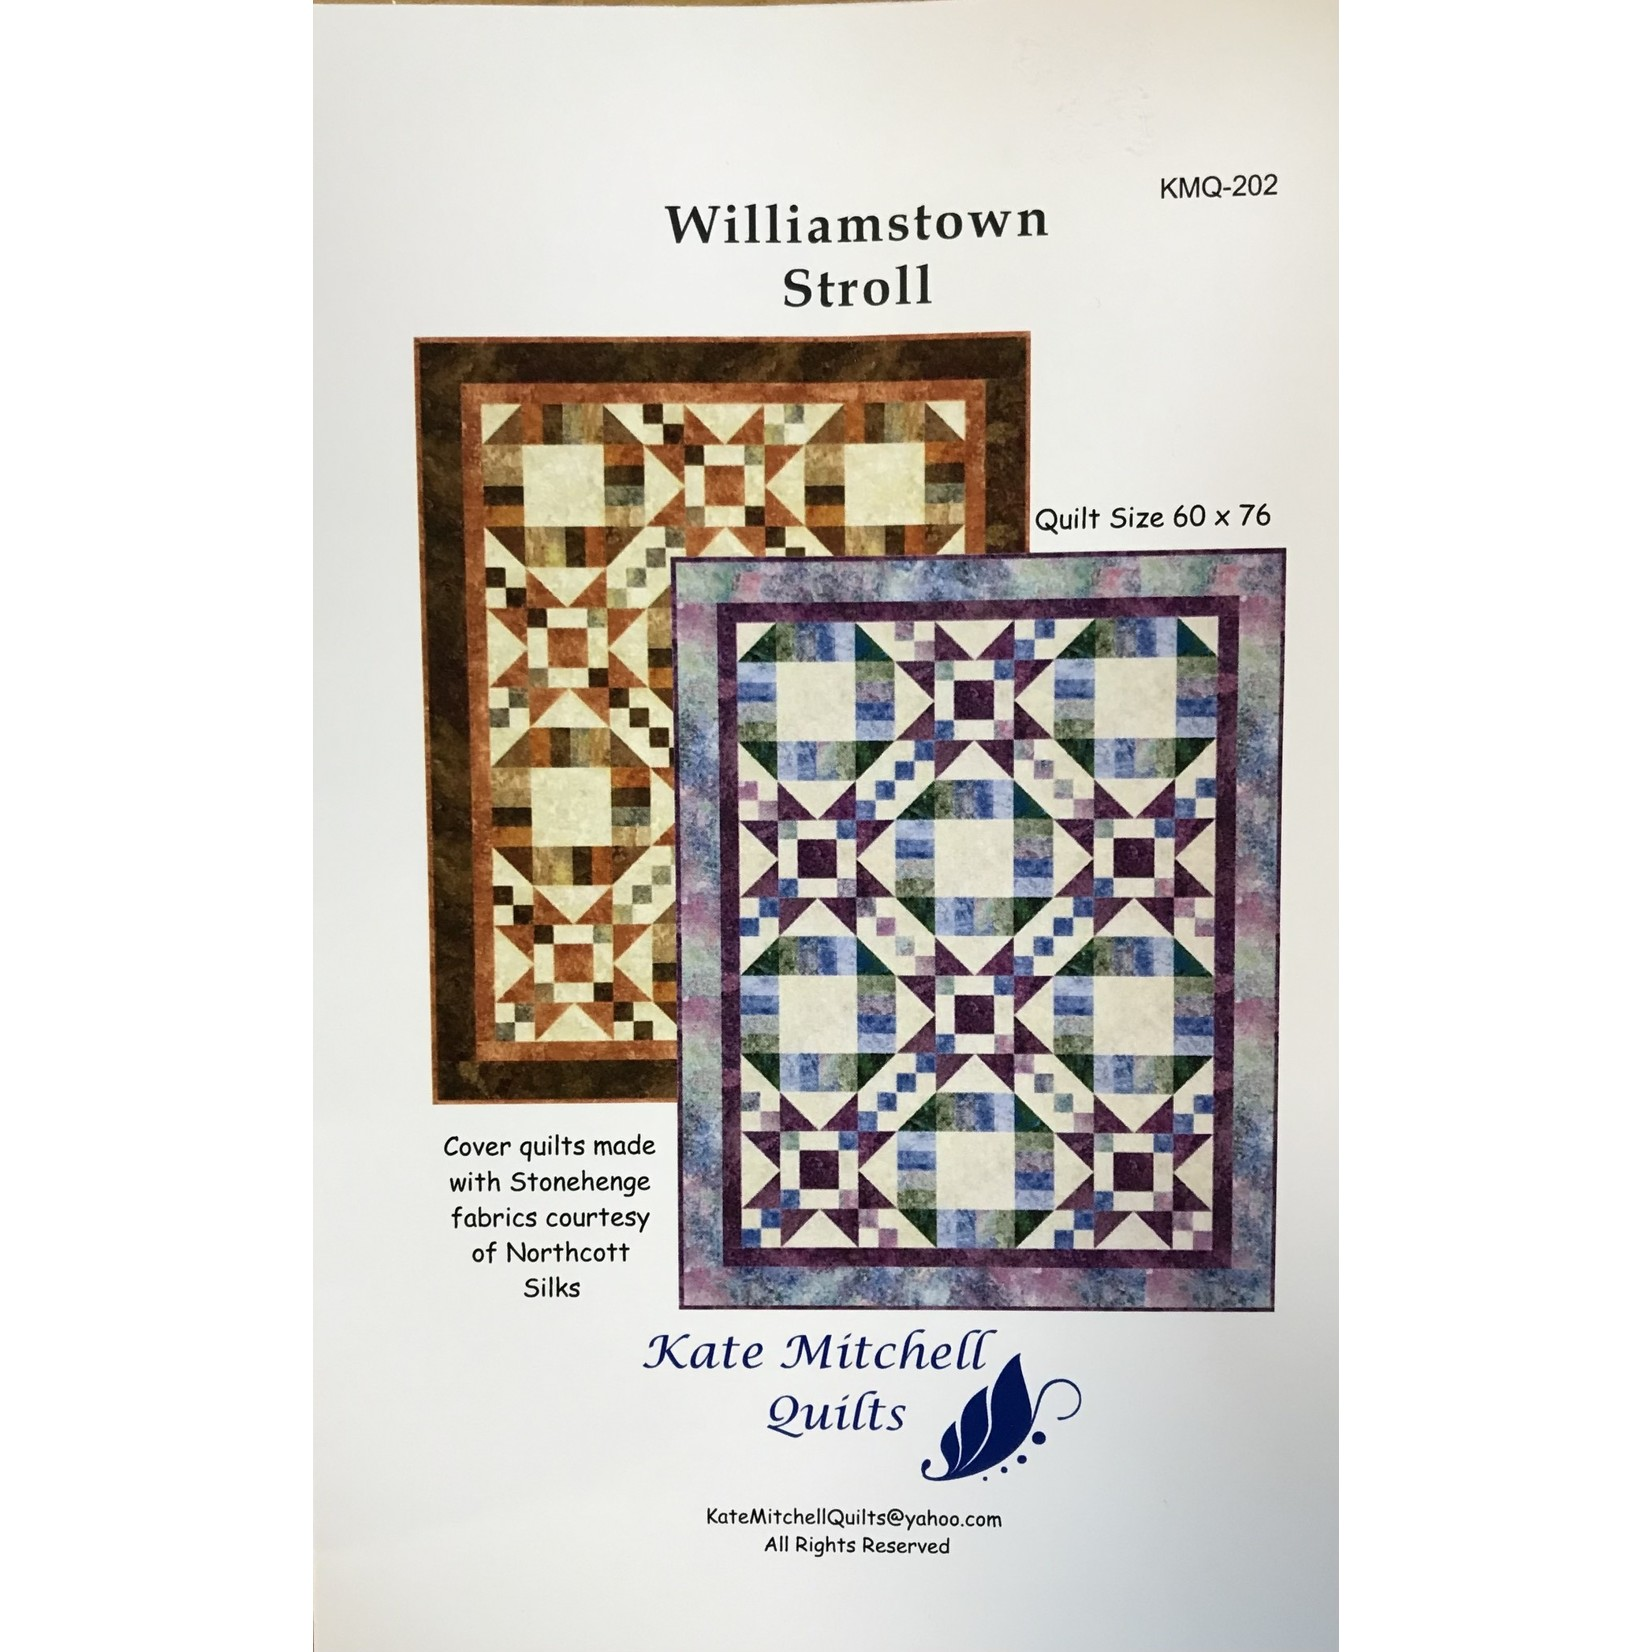 KATE MITCHELL QUILTS WILLIAMSTOWN STROLL PATTERN